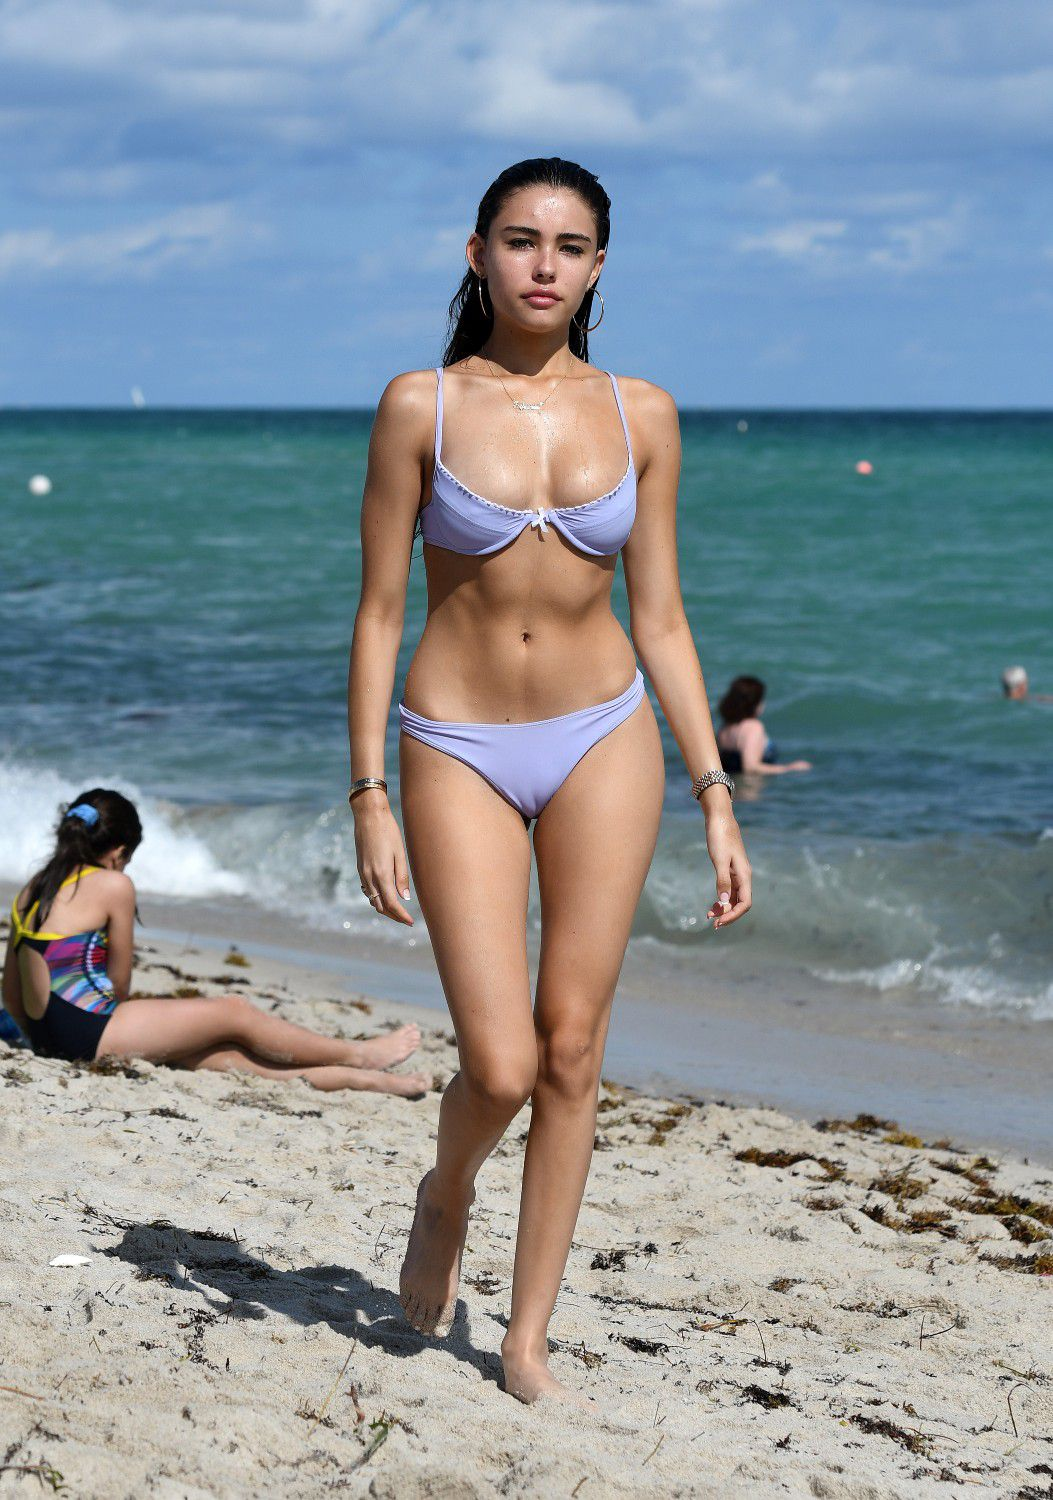 Camel toes on the beach